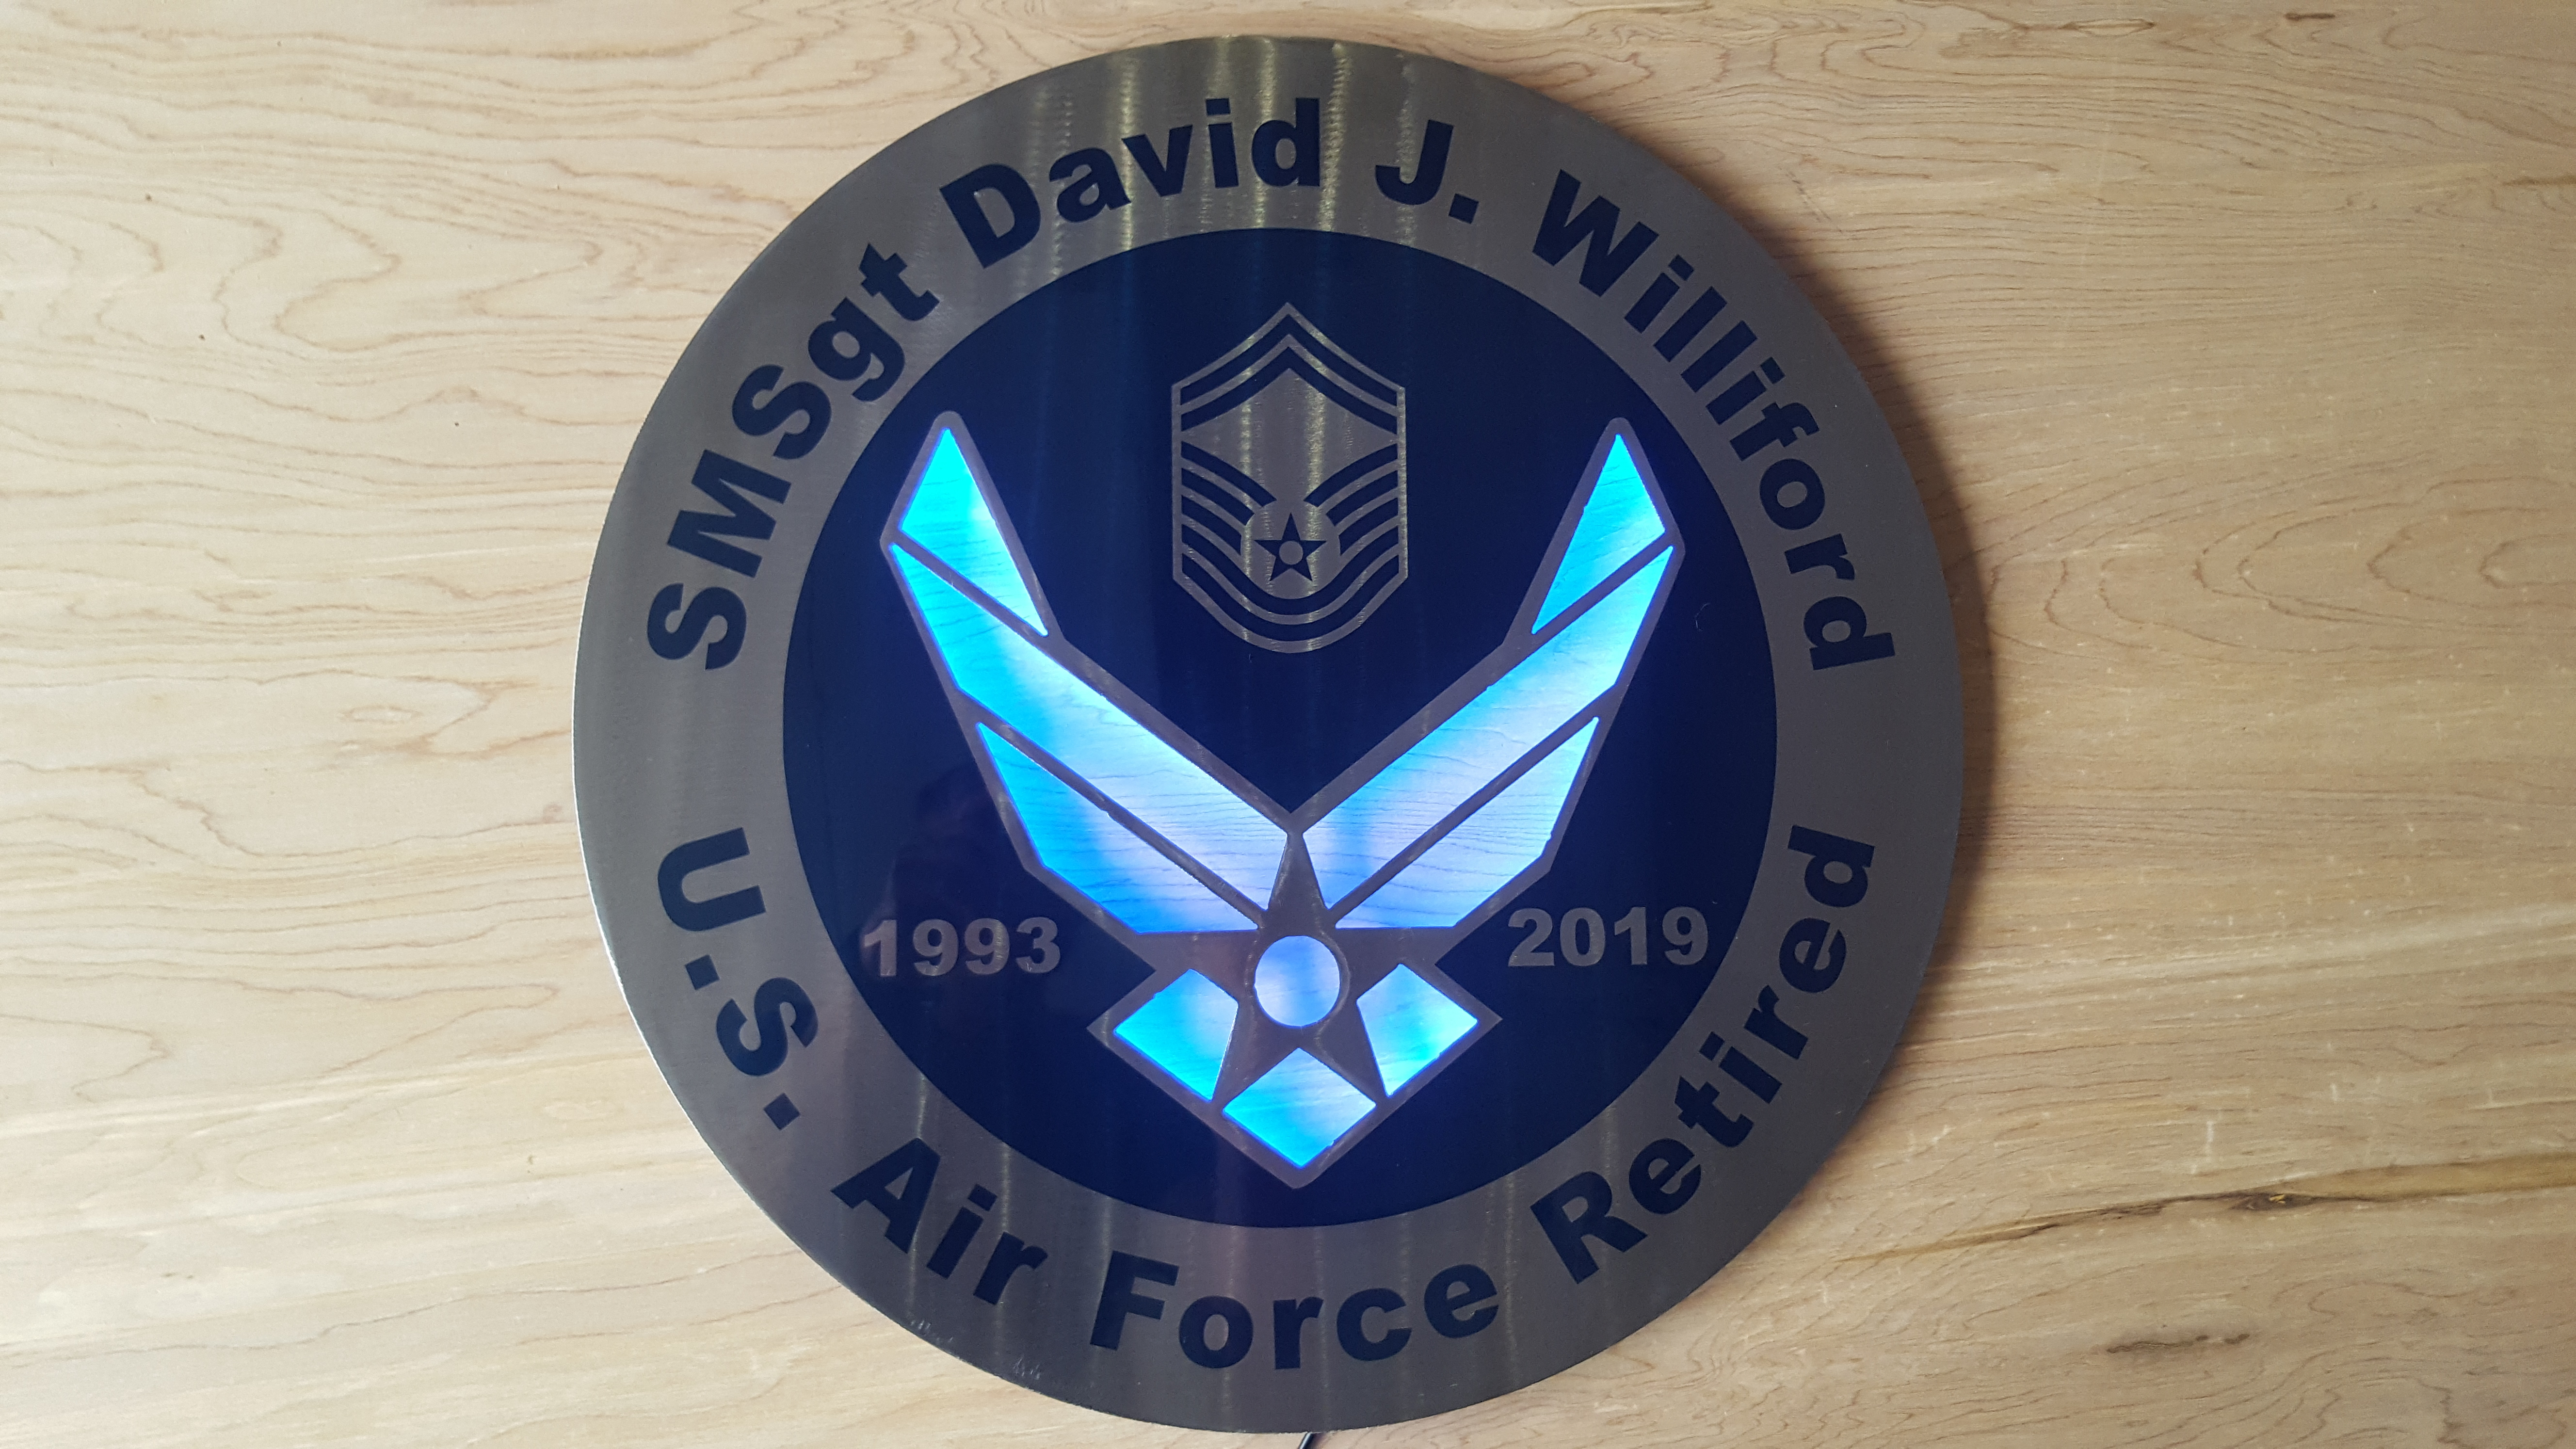 Air Force Retirement Gift - Photo Blog